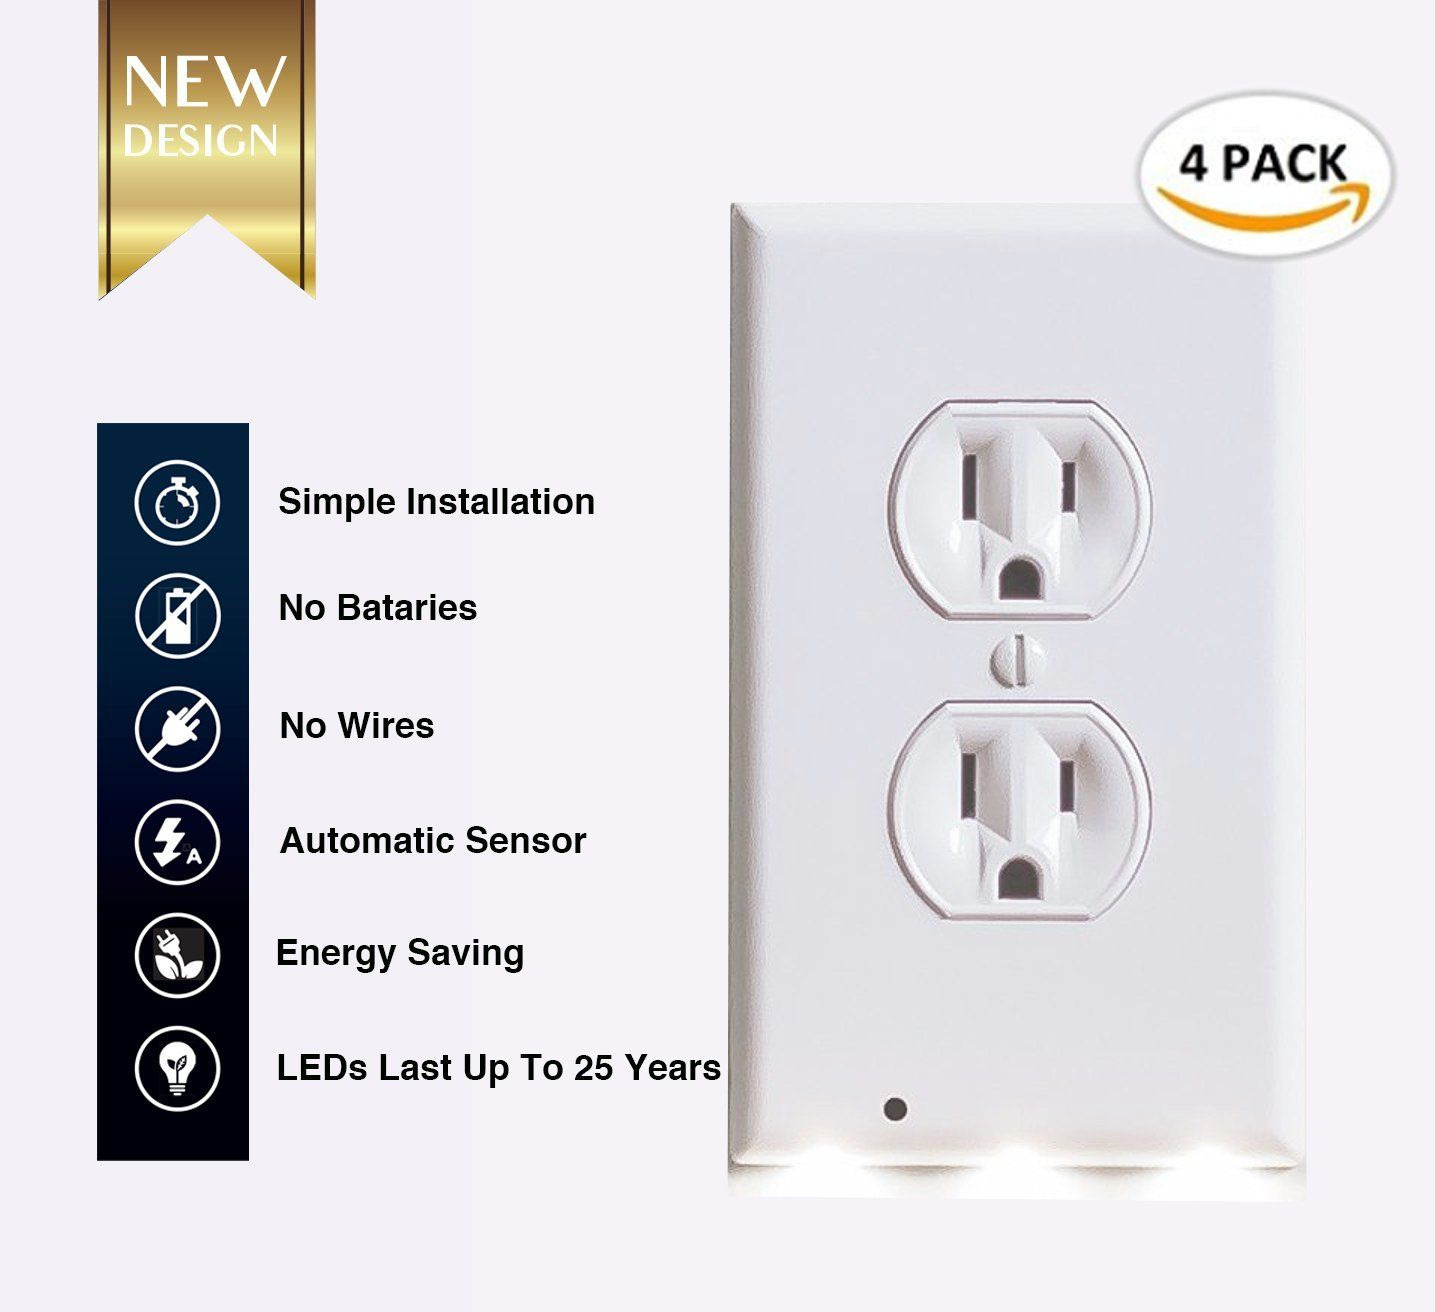 4 Pack Duplex Outlet Wall Plate With Led Night Light Guidelight Outlet Wall Cover Plate Receptacle With Energy Led Night Light Plates On Wall Led Lights